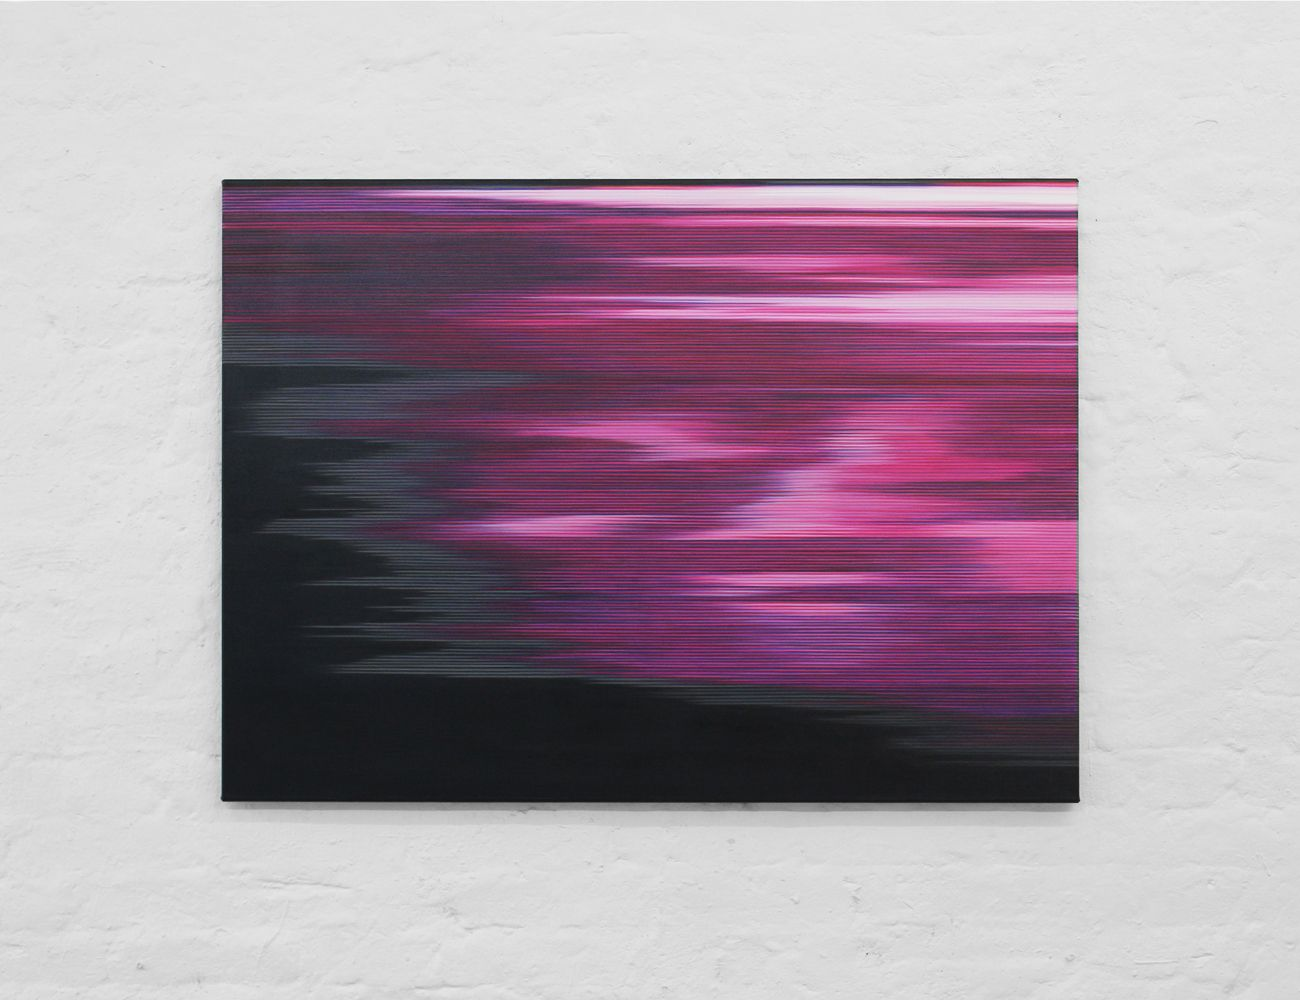 Pink Painting (Landscape n°10),Doris Marten,Contemporary painting